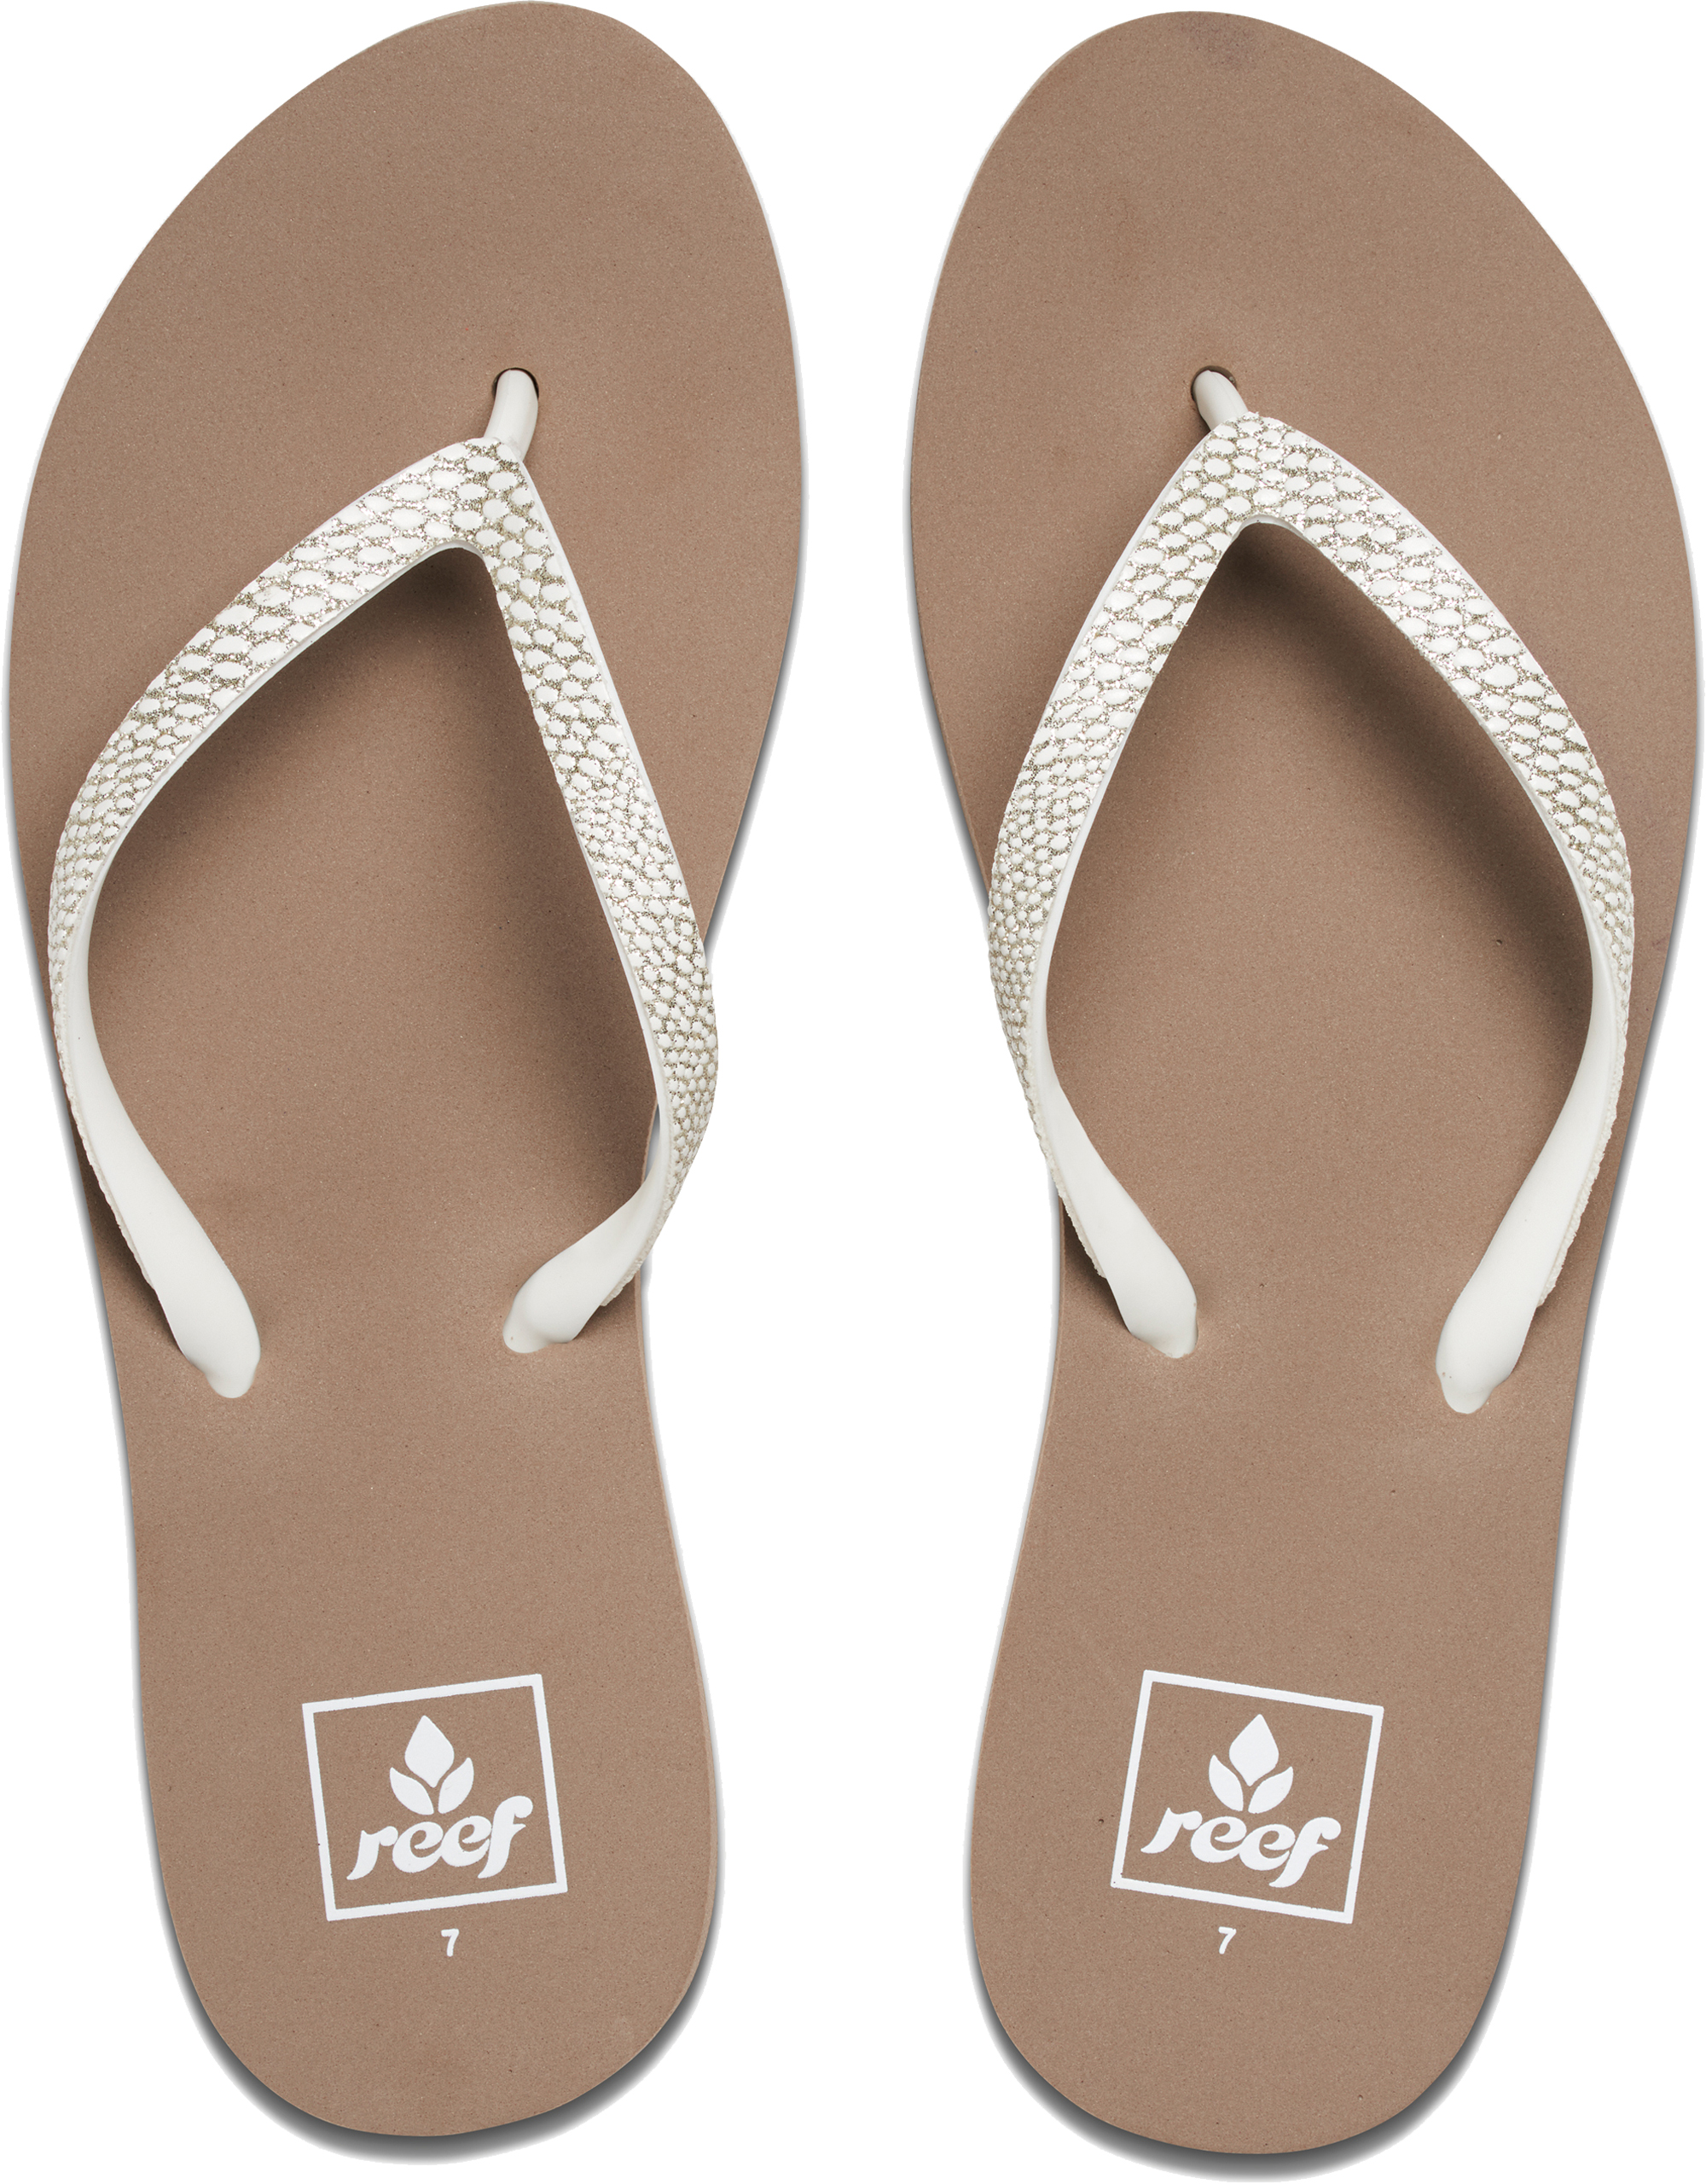 e0ab6b1f3 Reef Women s Stargazer Sassy Flip Flops PVC Strap Uk4 Taupe Grey. About  this product. Picture 1 of 5  Picture 2 of 5 ...